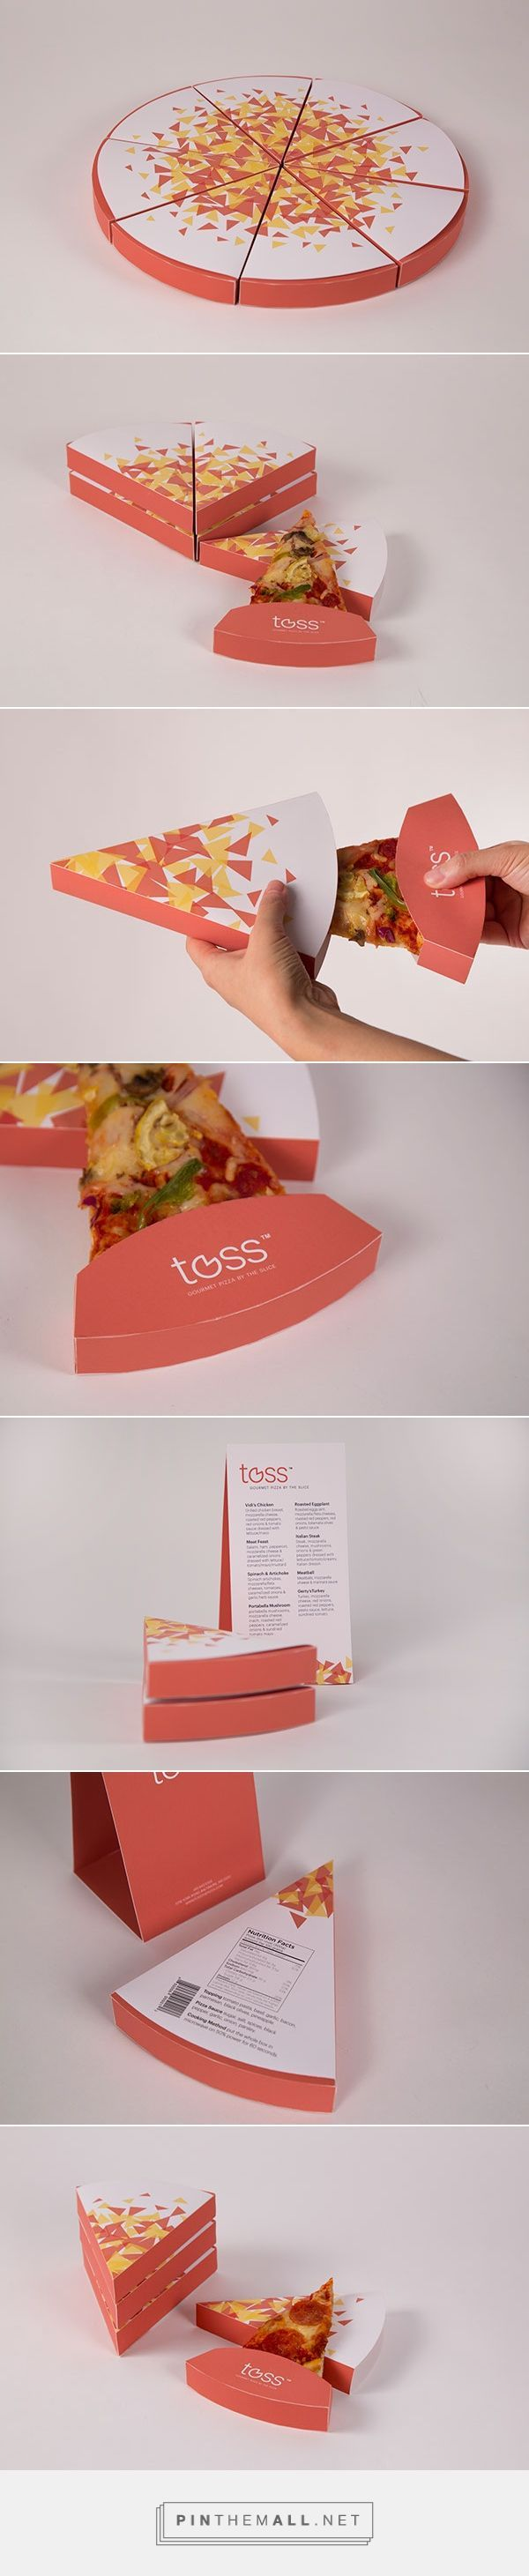 Great pizza packaging for a to-go slice! Brandshift: Toss - Gourmet Pizza by the Slice designed by Yinan Wang